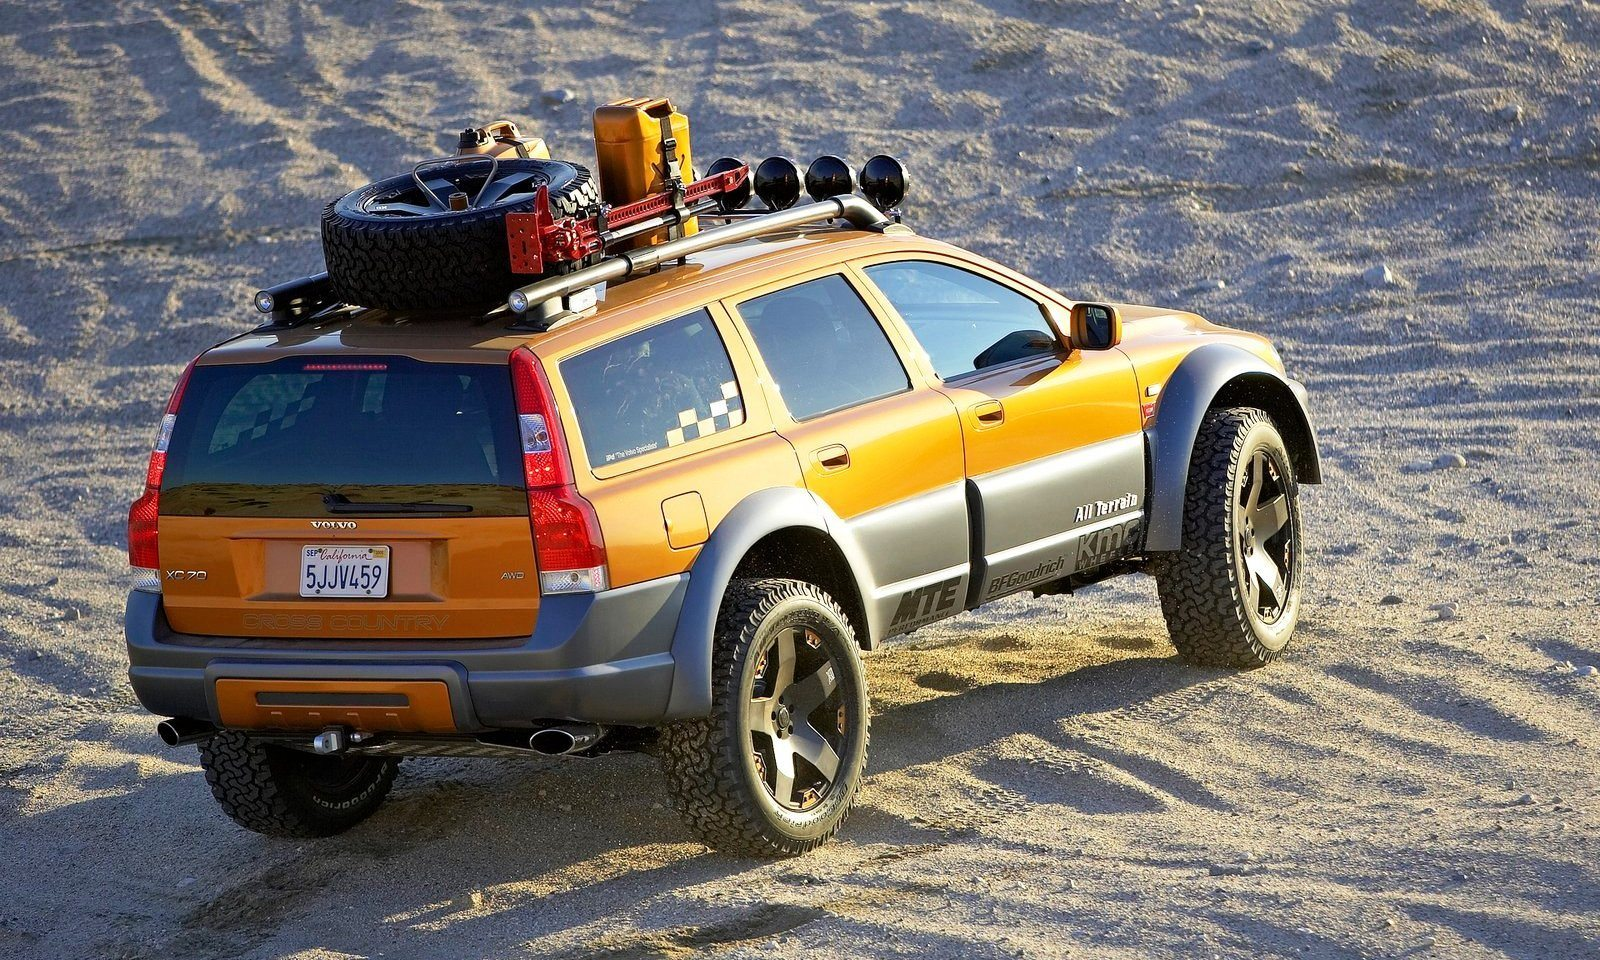 2005 Volvo XC70 AT and 2007 XC70 Surf Rescue are California Surf'n'Turf Dreams 8